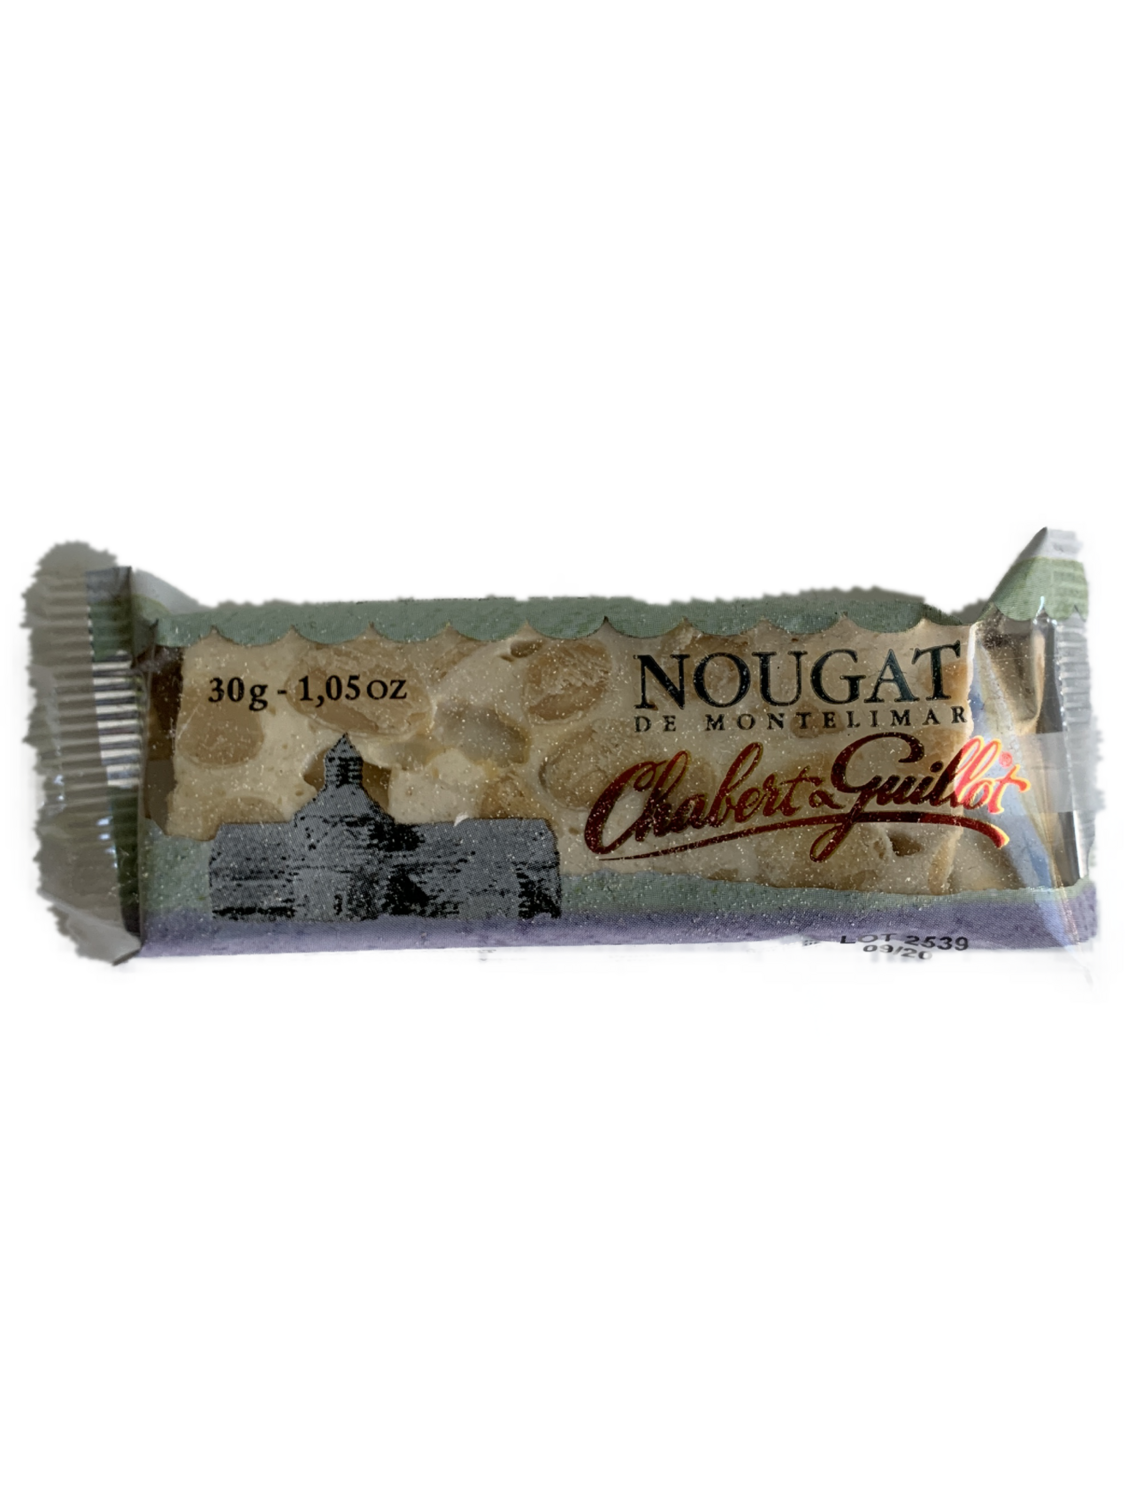 Nougat  Chabert and Guillot 30g